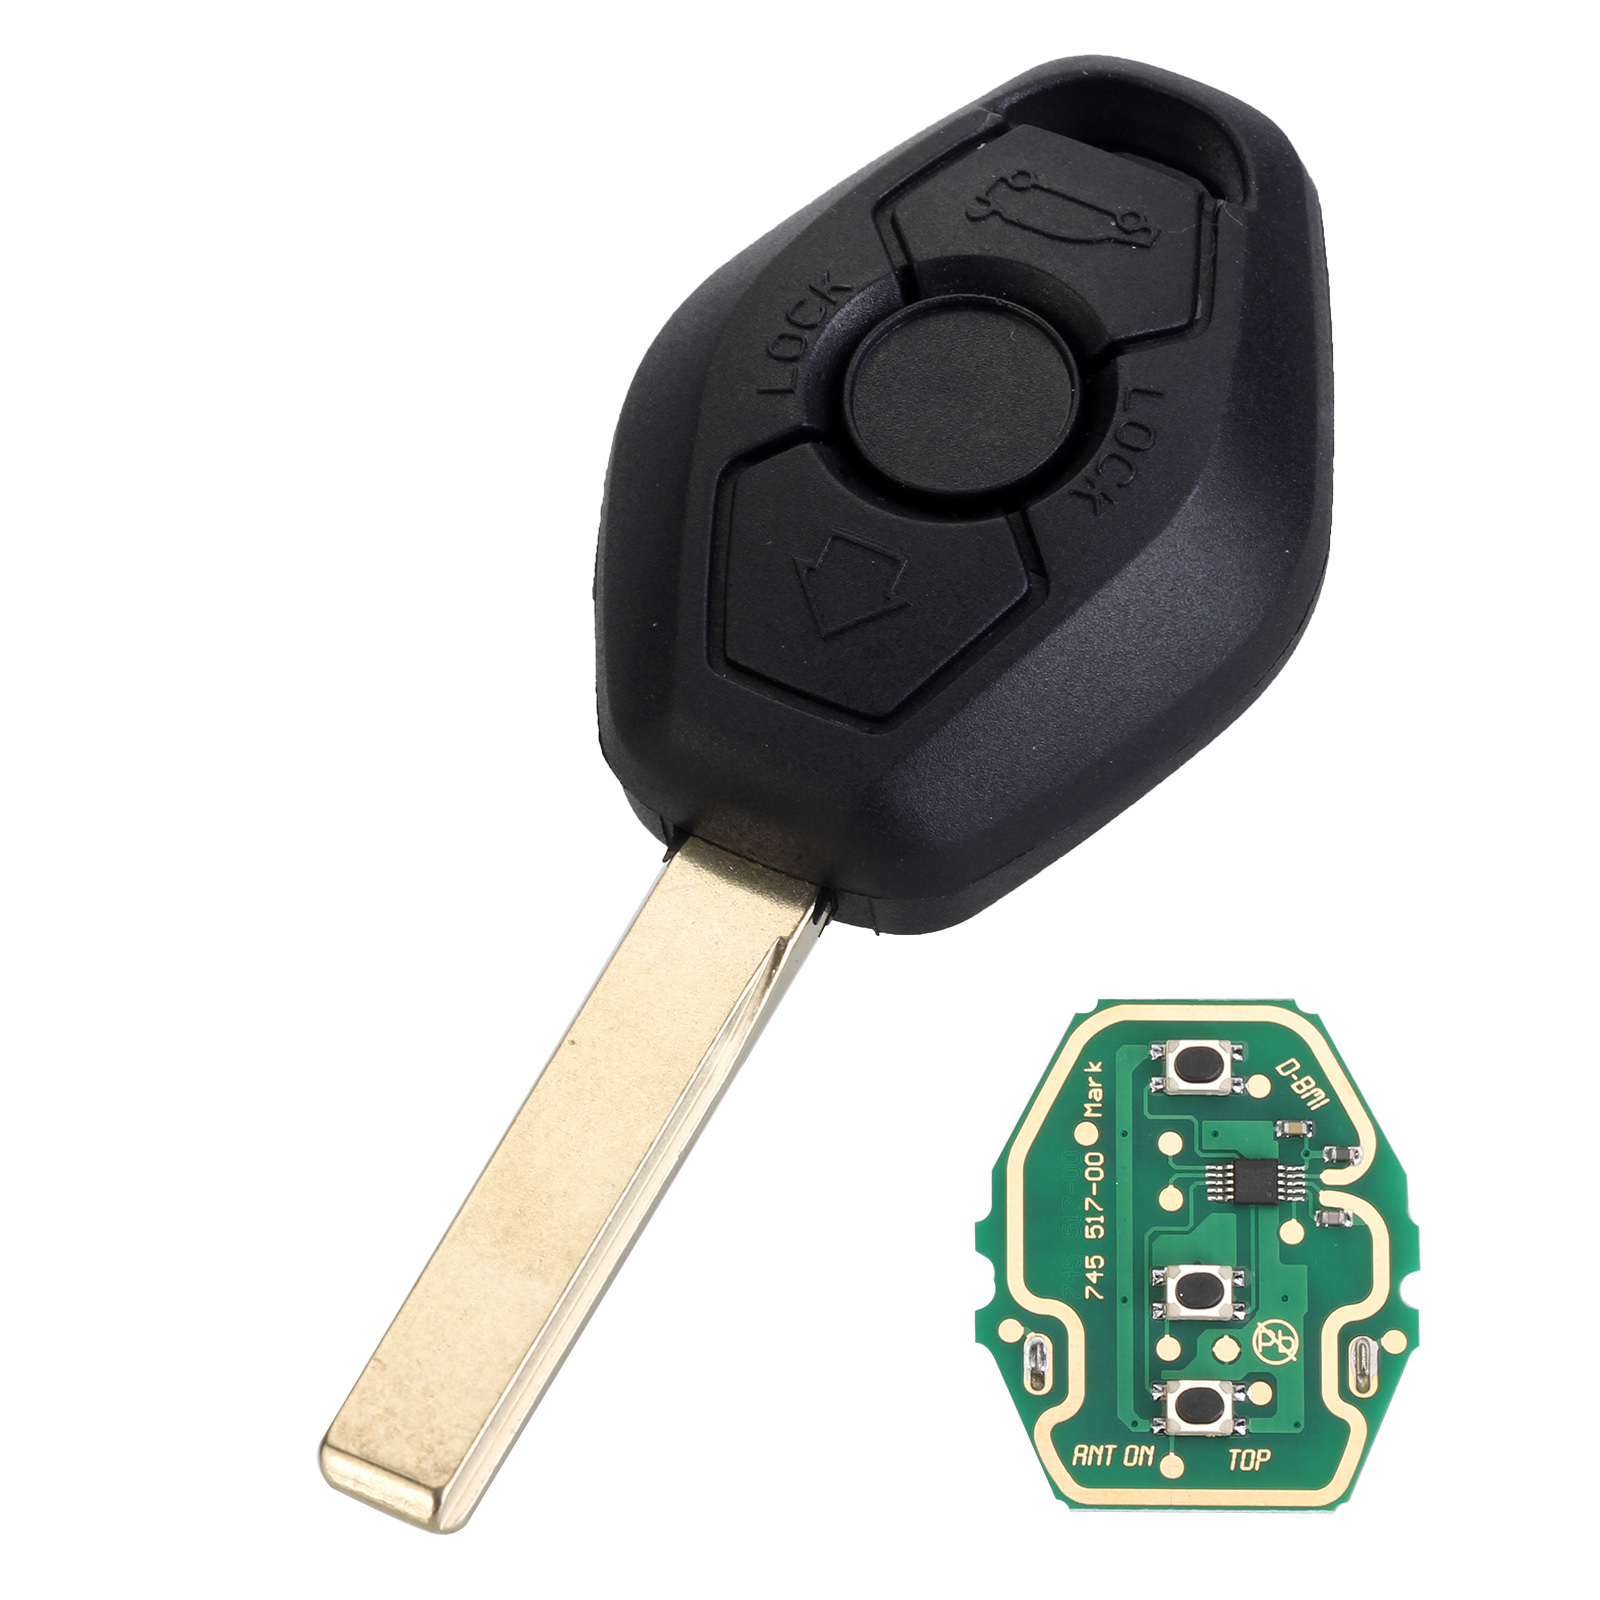 Details about 3 Button Remote Key Fob ID44 Chip 315/433MHz for BMW 325Ci  325i 530i 645Ci M3 X5